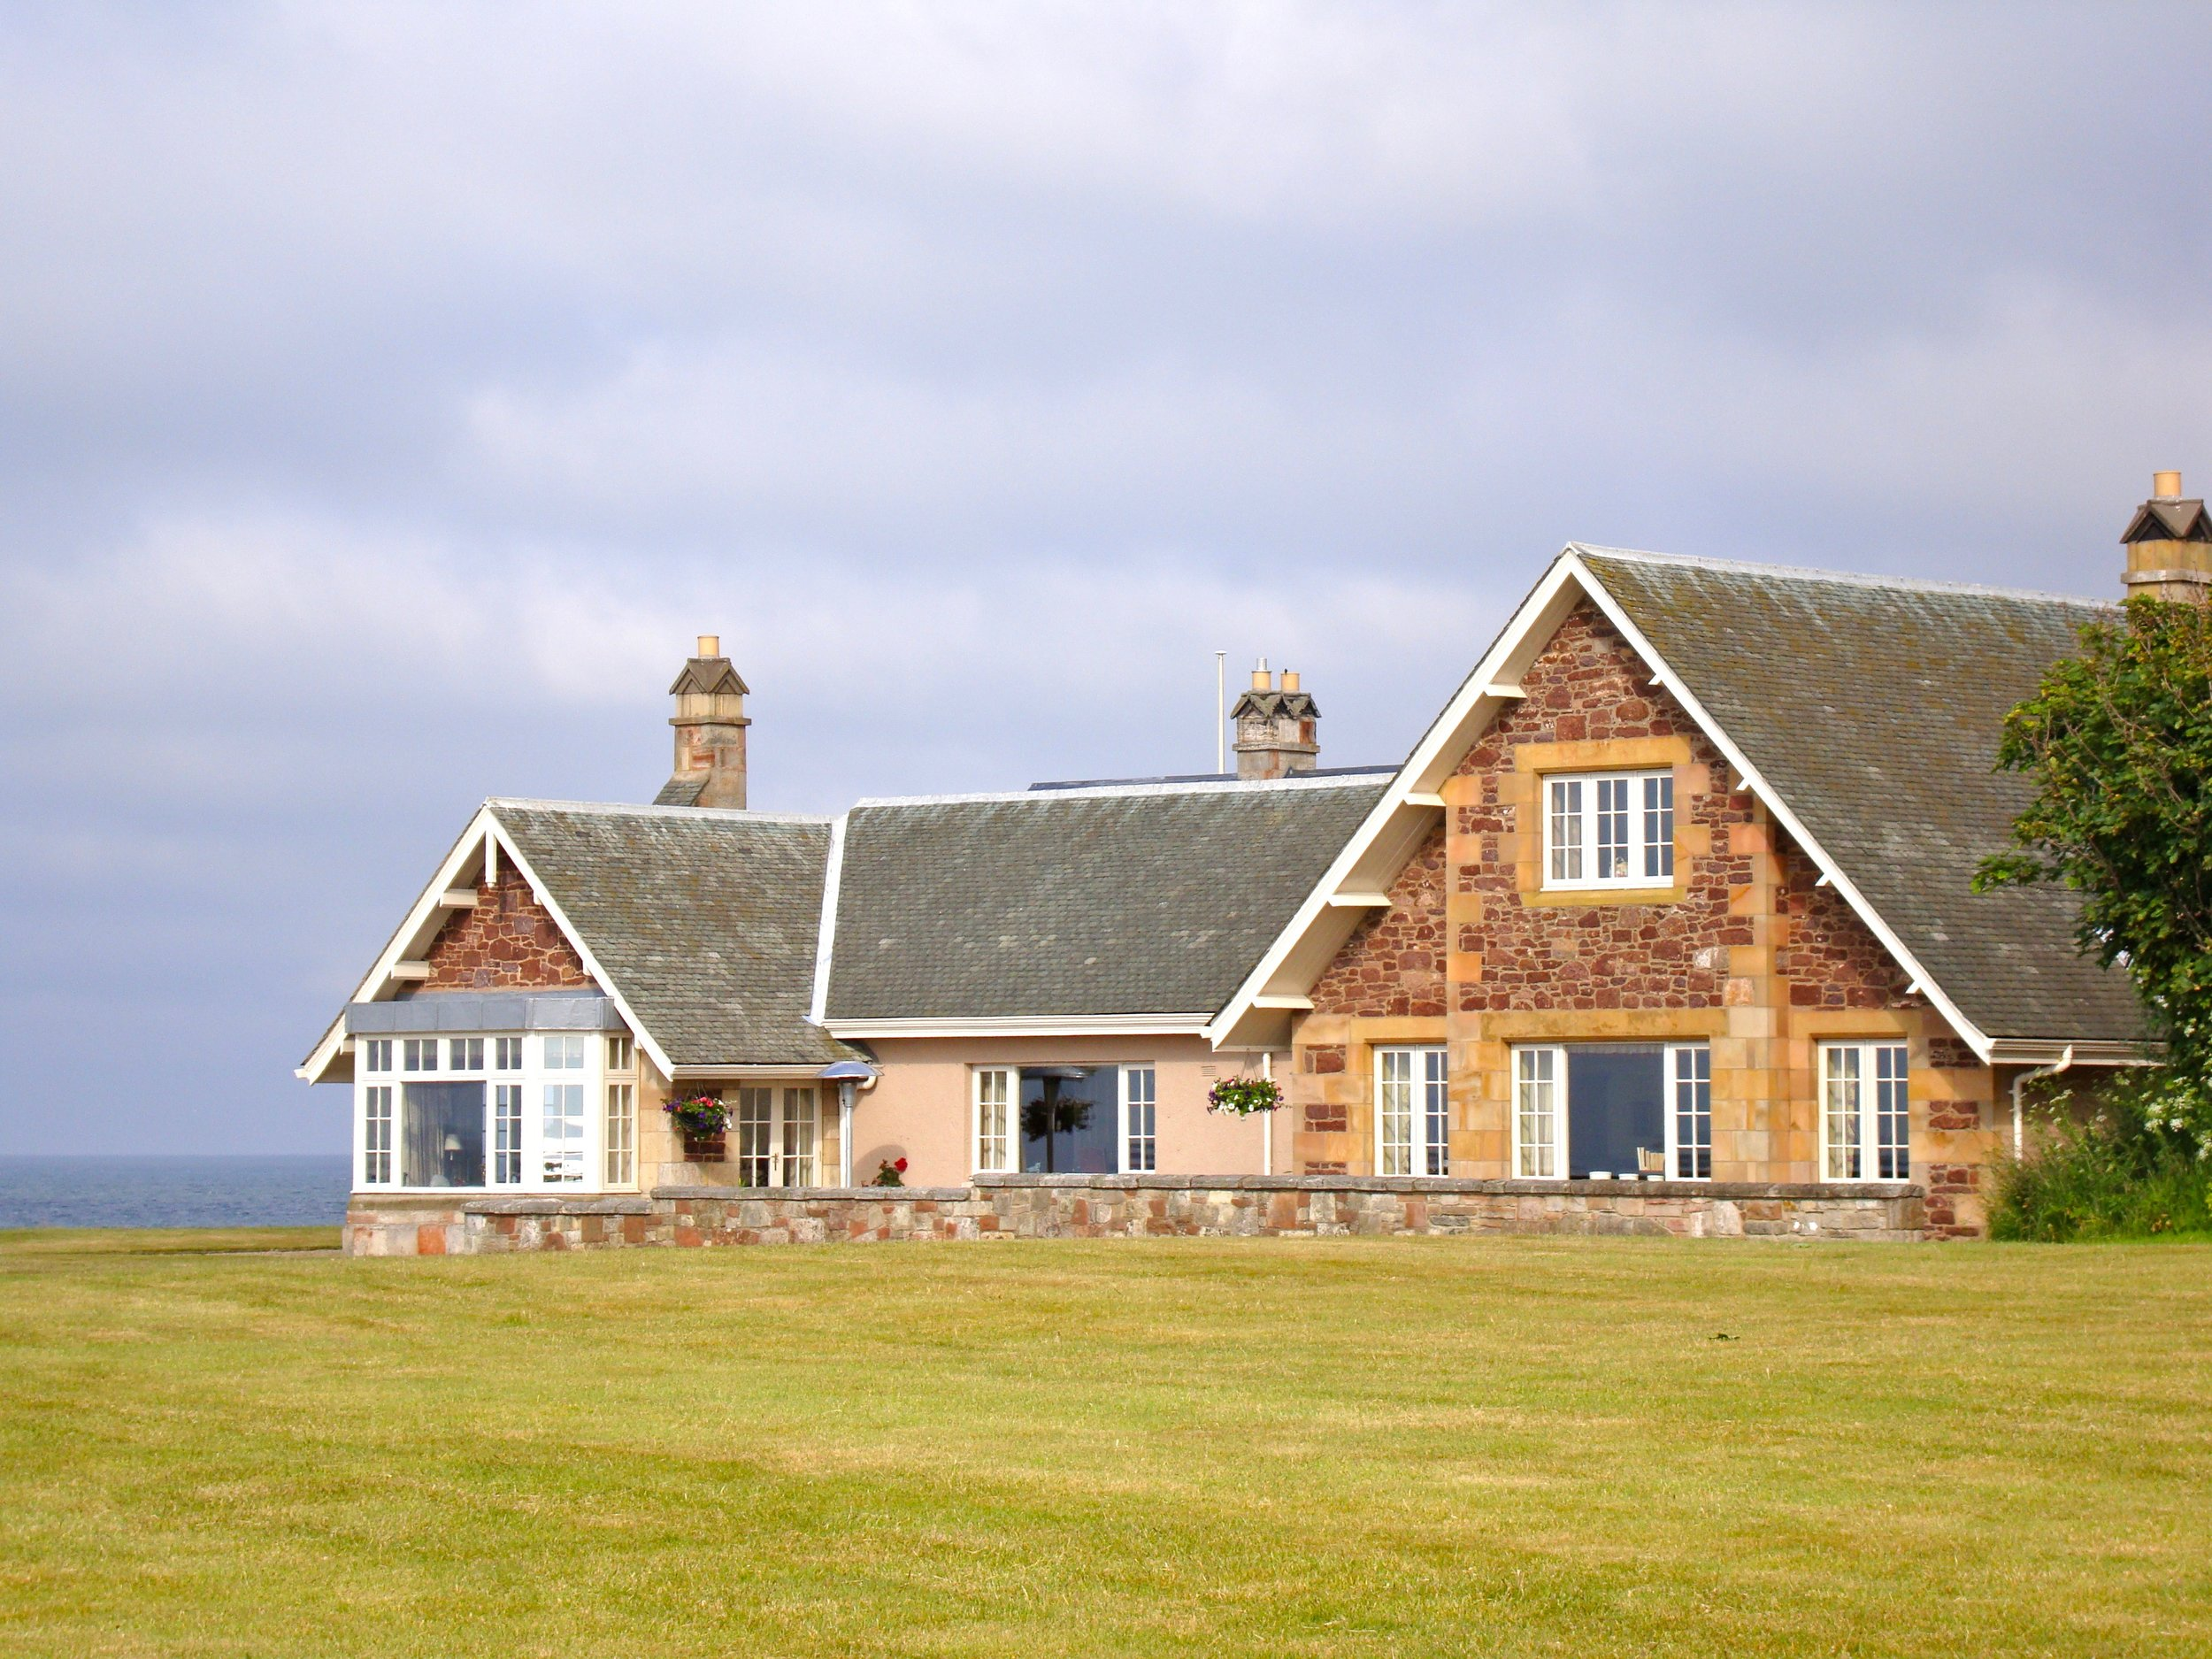 This house can be rented from Archerfield. It is sensational, sleeps 8 easily. Lovely location overlooking the firth and Fidra. We rented for my Mum's 80th birthday.